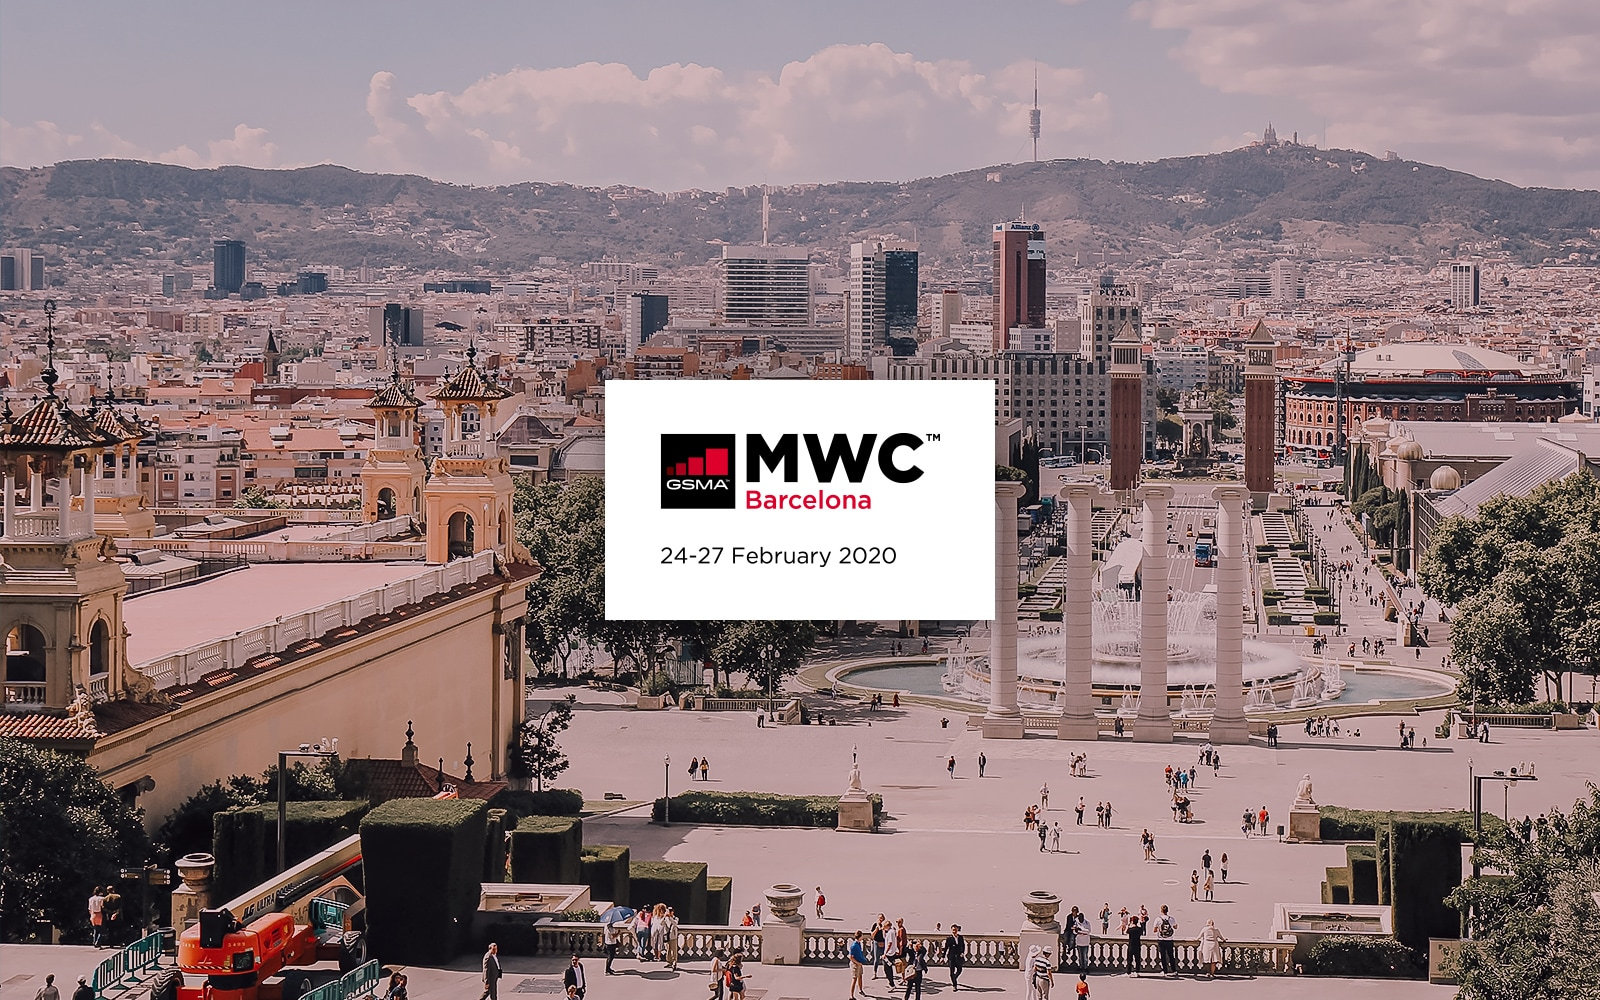 [CANCELADO]:URBSENSE no Mobile World Congress 2020